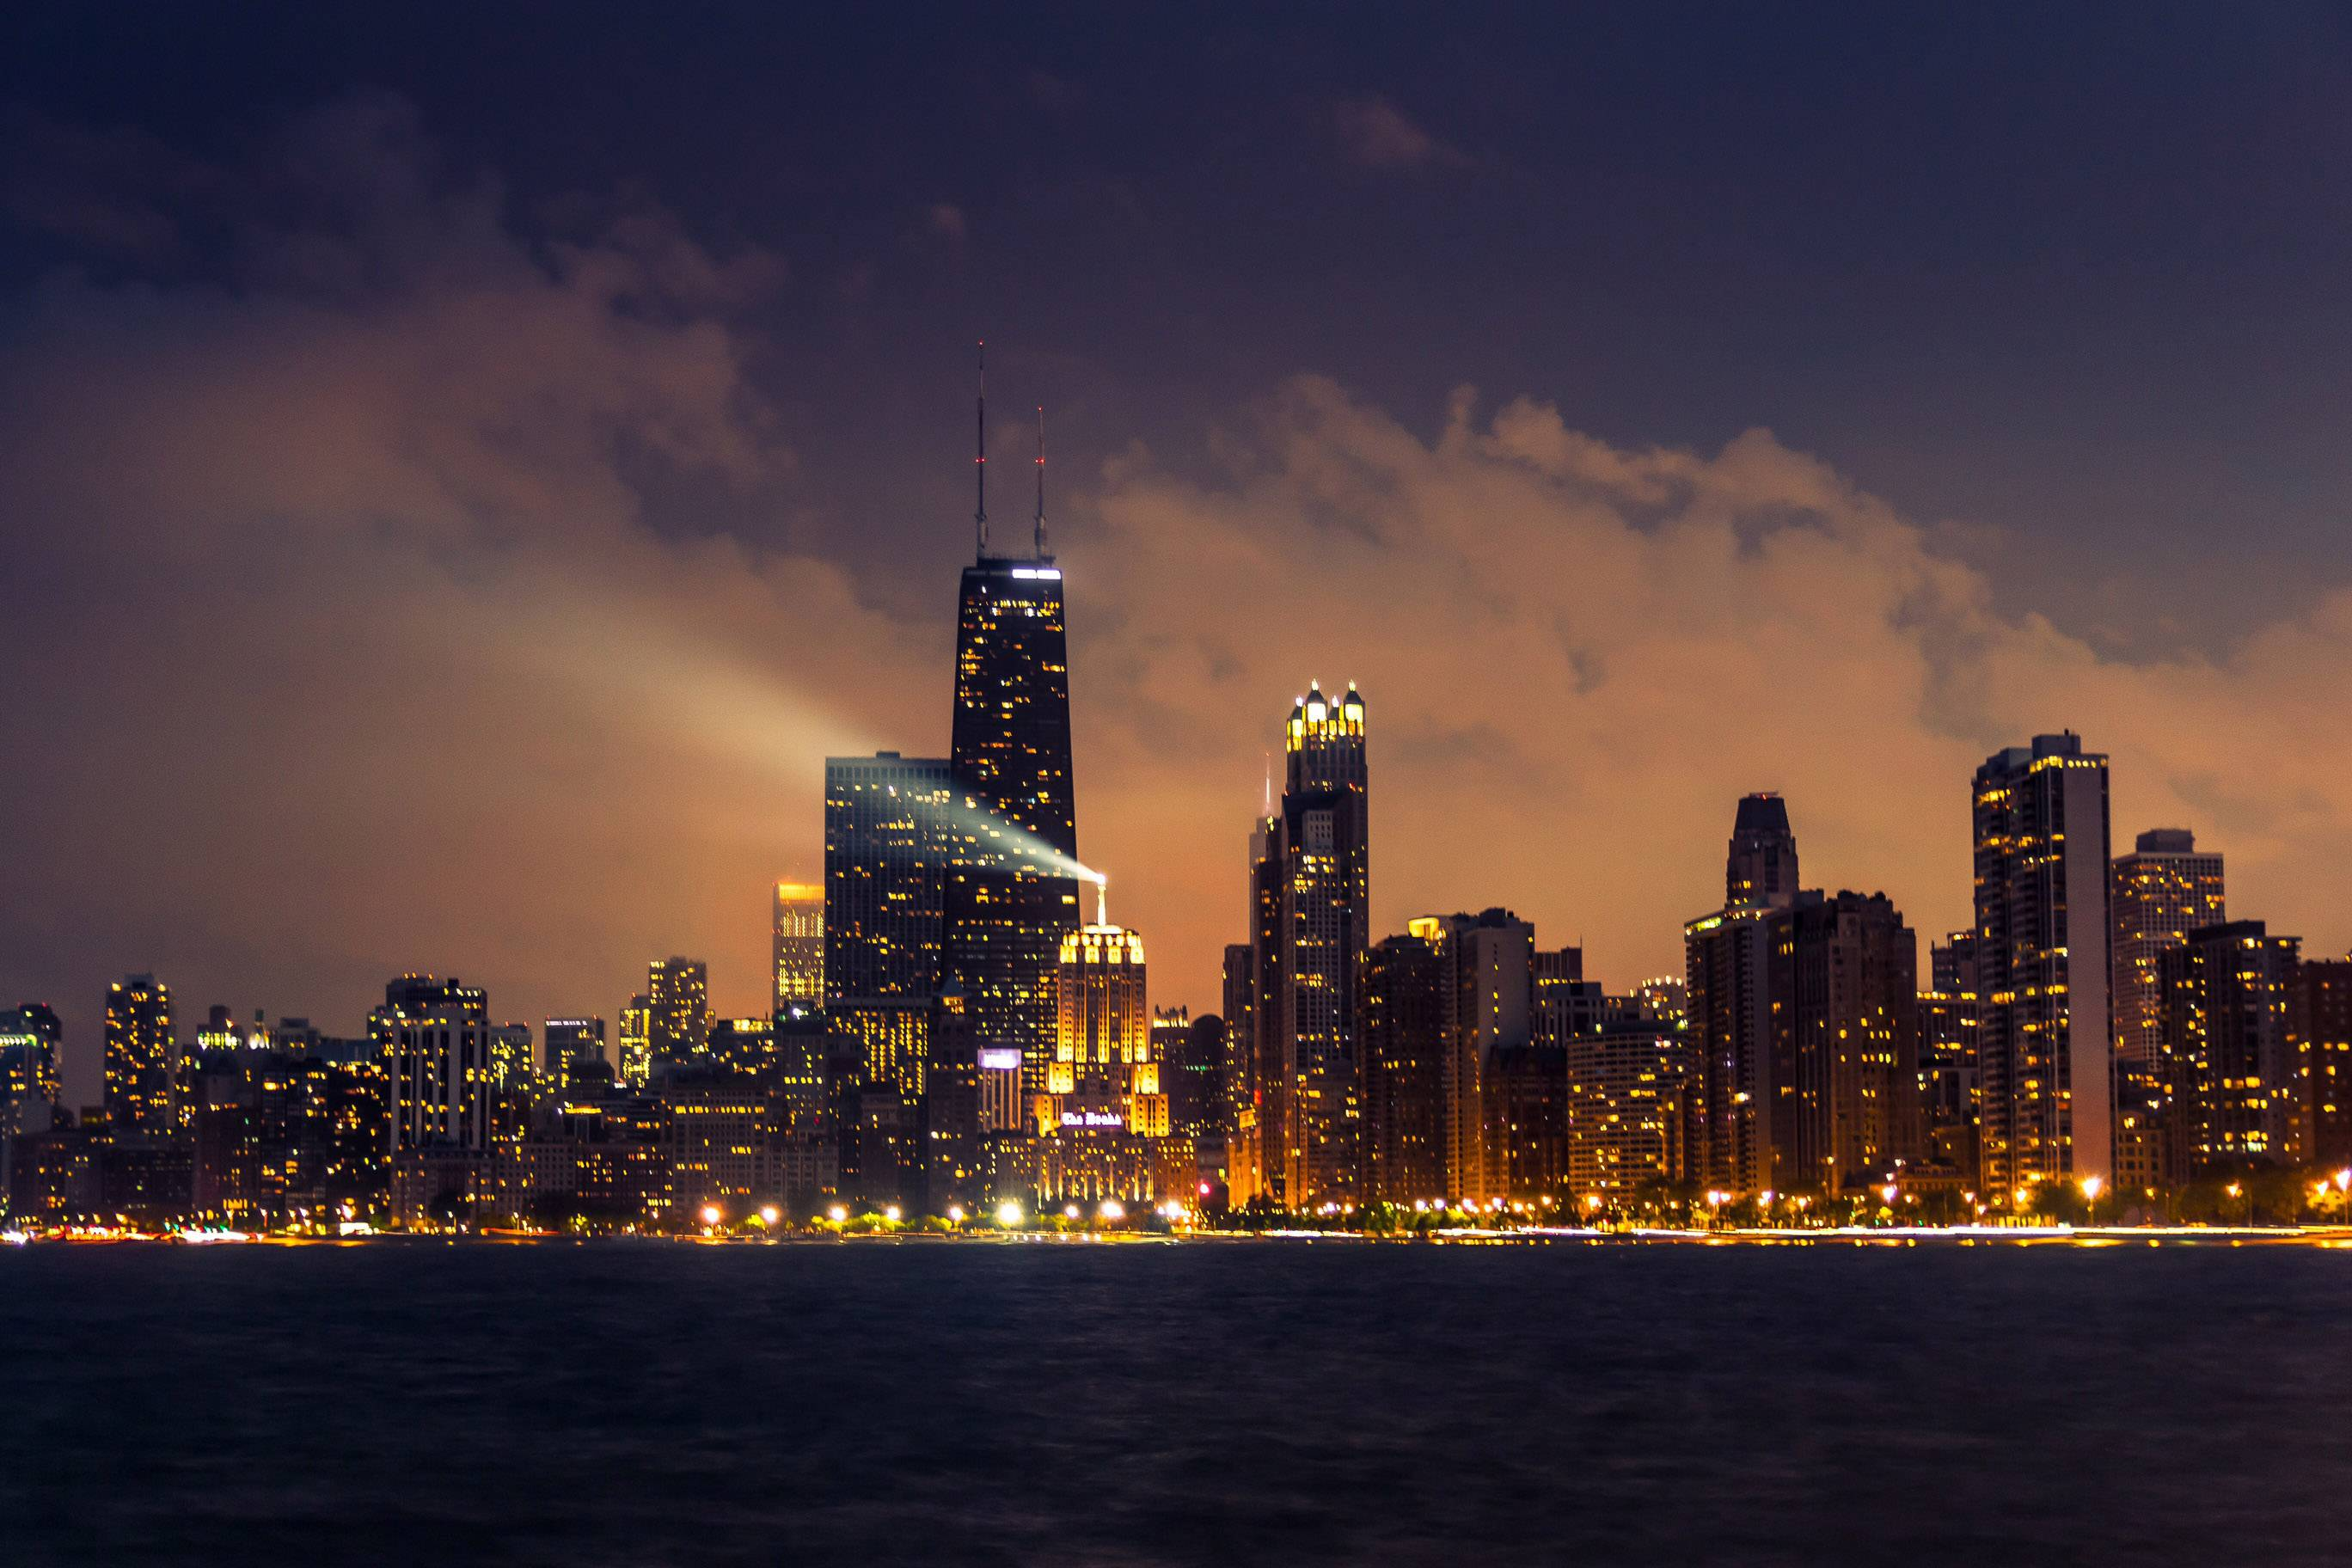 On a misty night in Chicago, the beacon light warns ships on Lake Michigan traveling in the dark night that land is nearby.